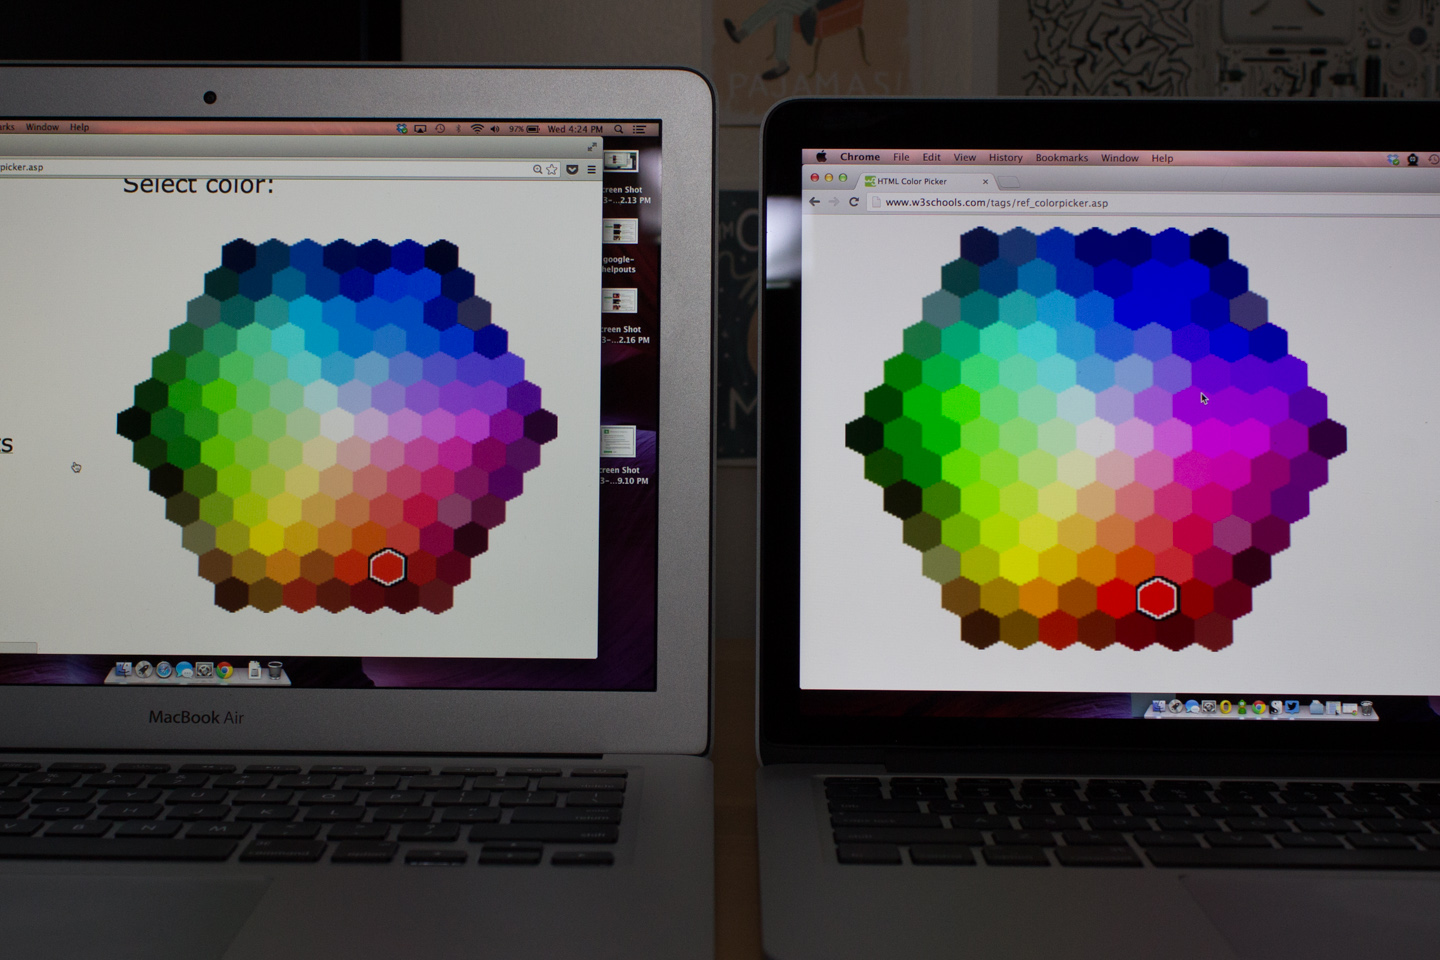 The screens of the two computers are similar in color quality, though the MacBook Air's is a little faded at higher brightness levels.